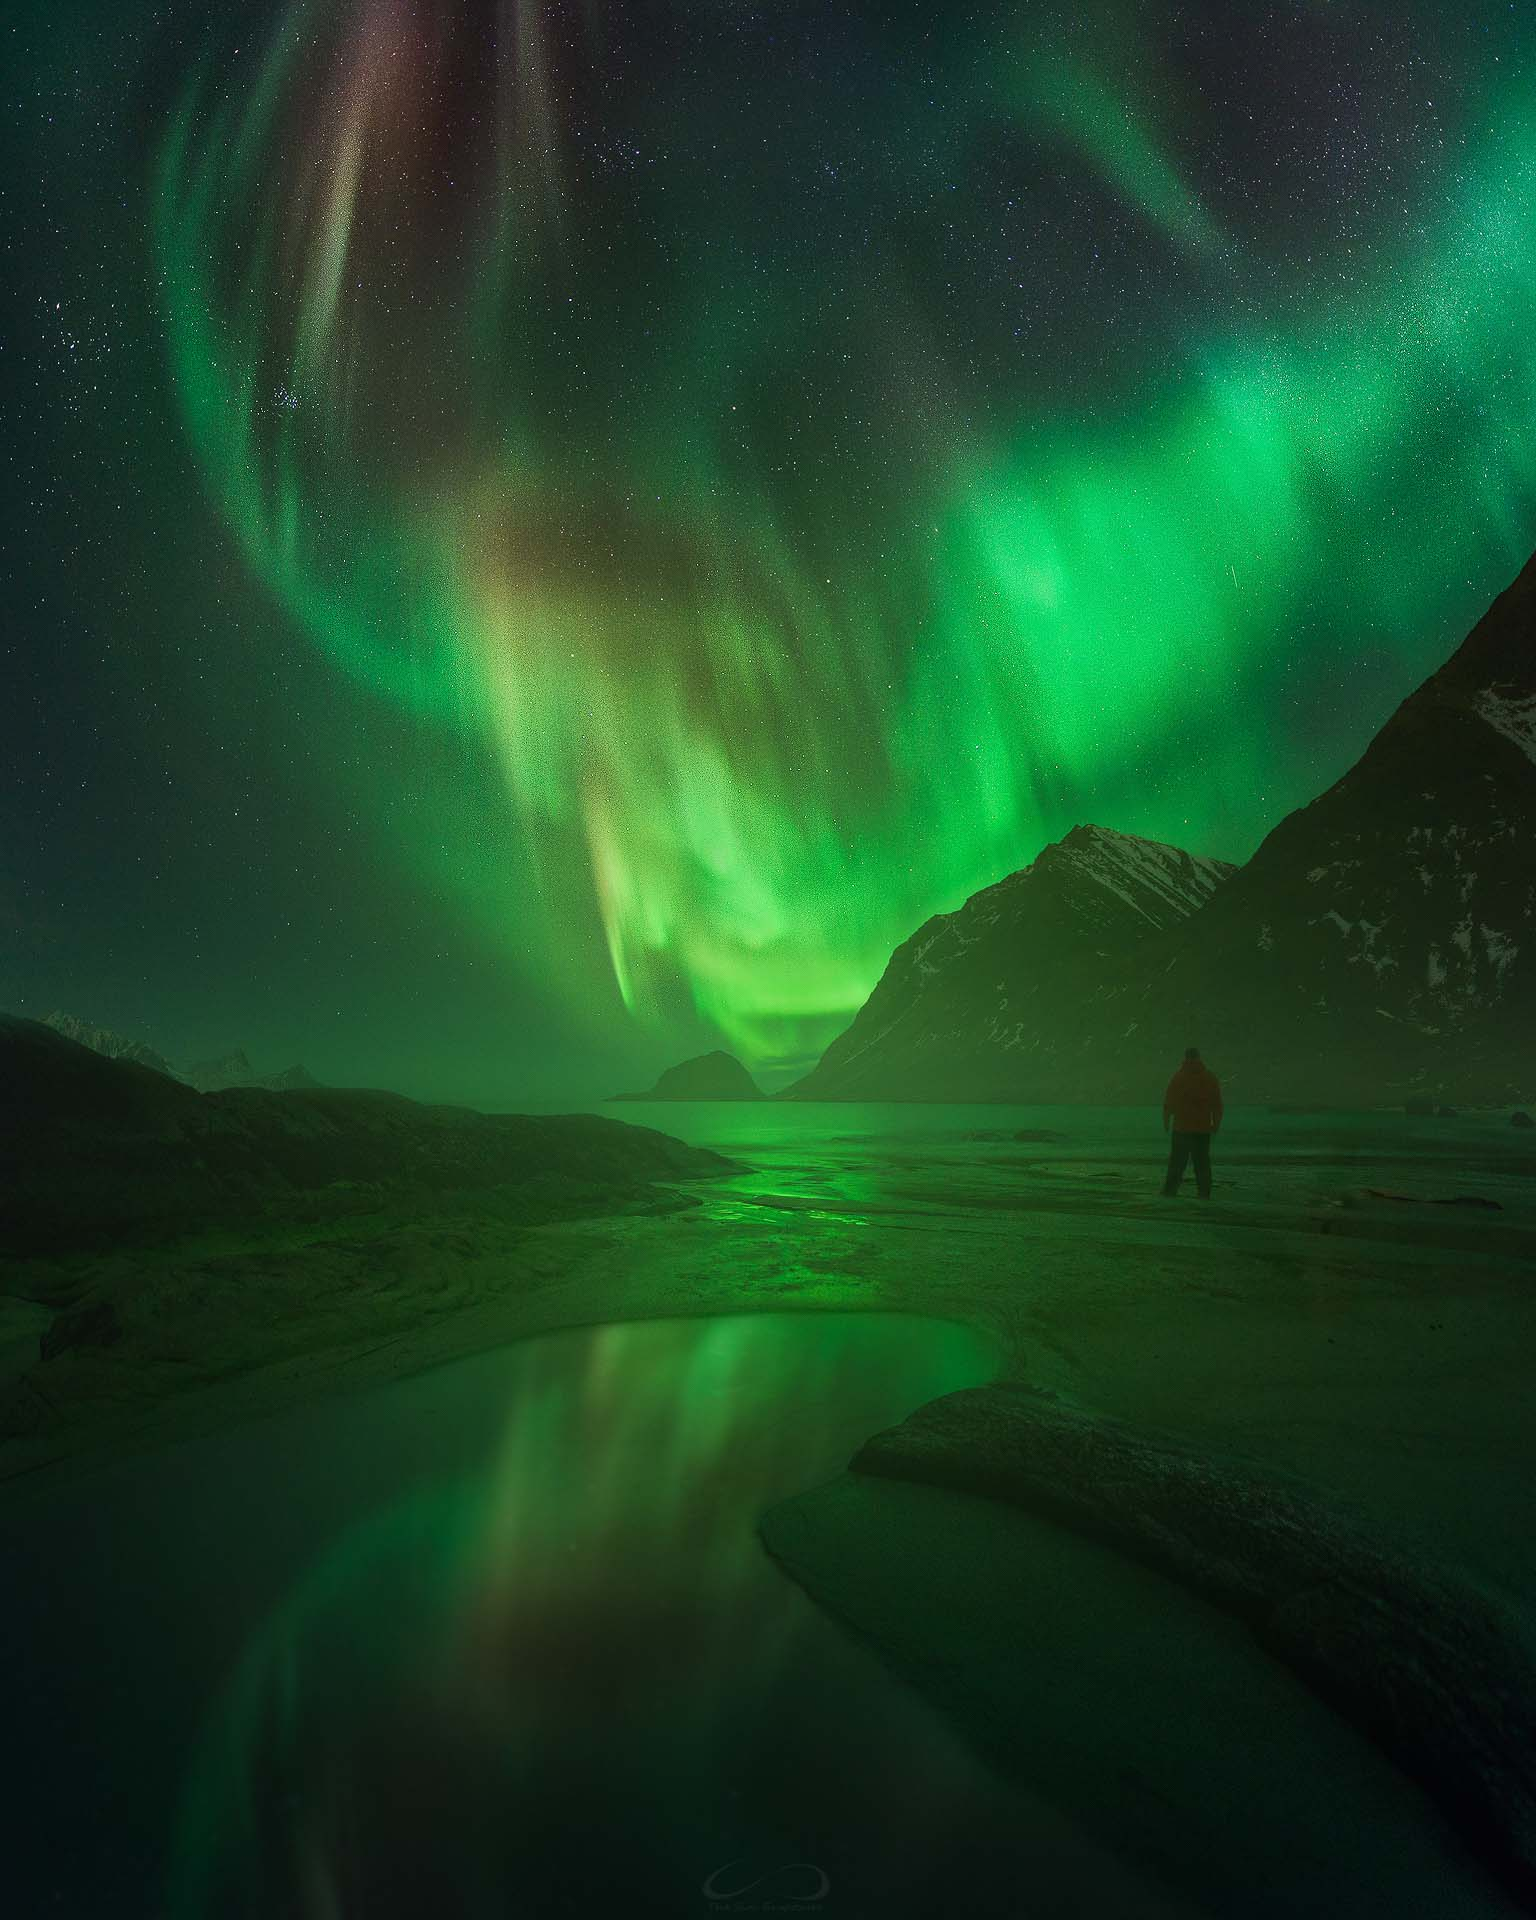 Northern Lights Norway Haukland Lofoten Islands Aurora Borealis